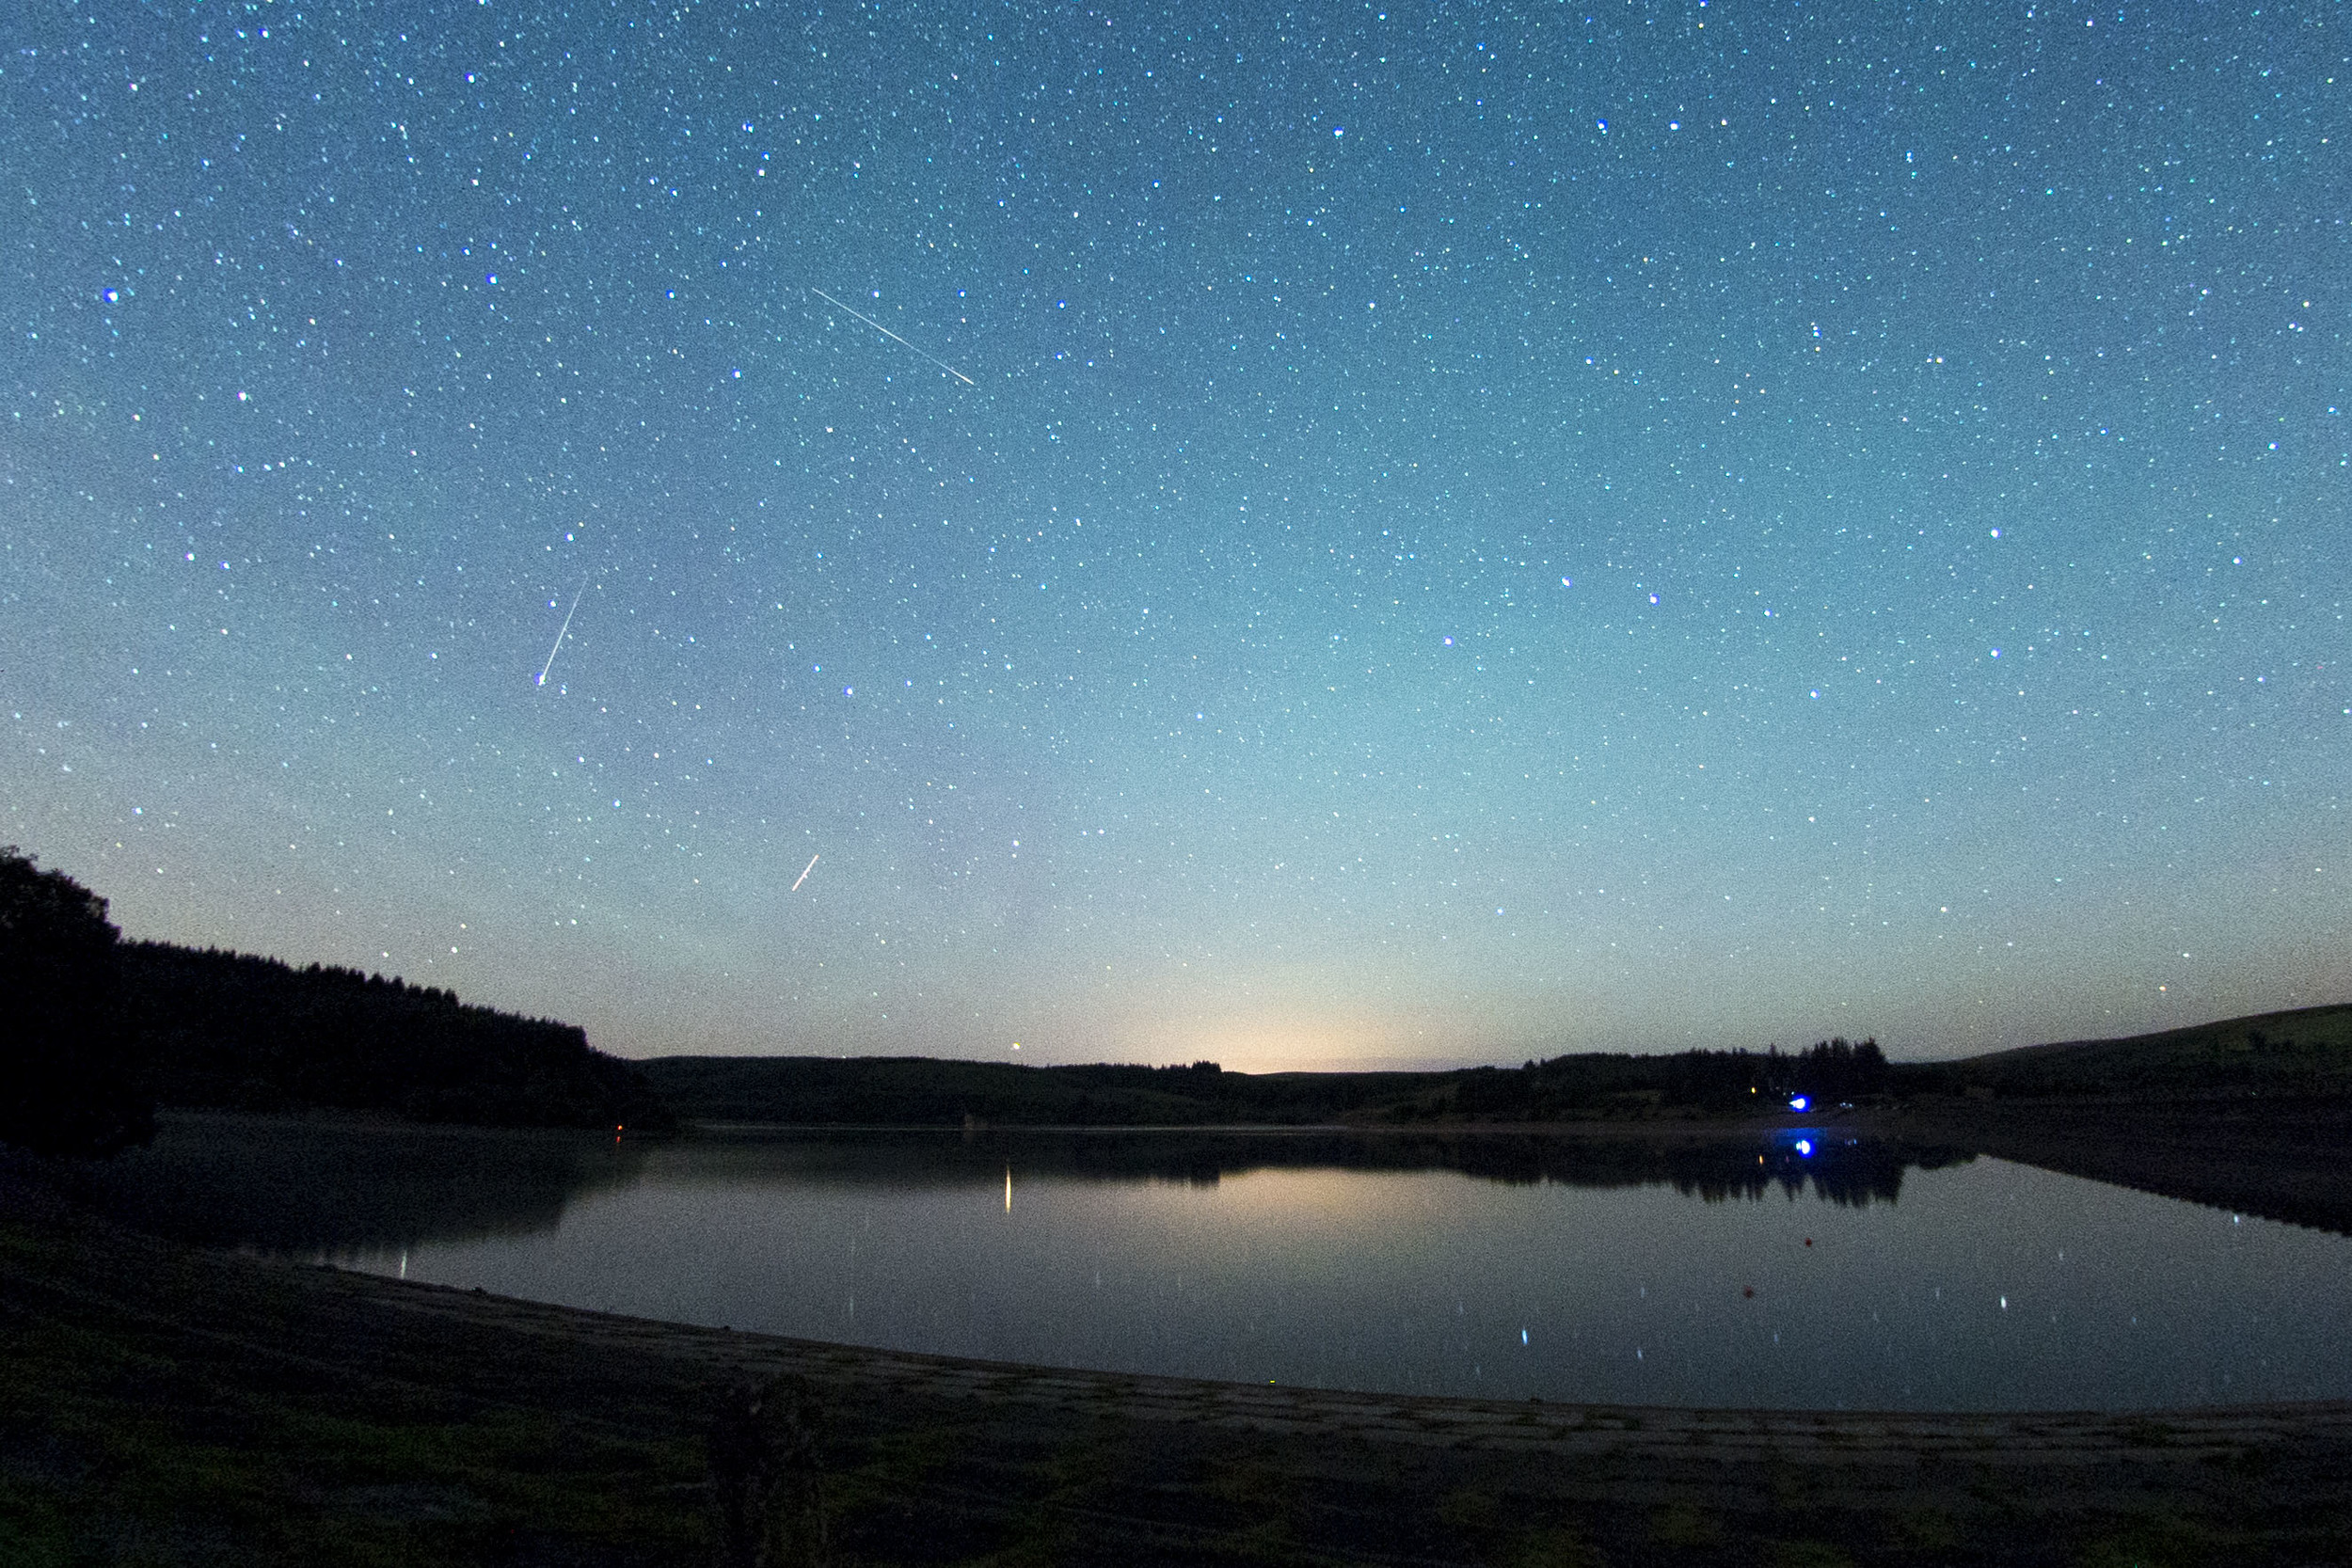 Perseid Meteor Shower 2015 at Usk reservoir, Brecon. The Perseids are pieces of Comet Swift-Tuttle - each August, the Earth passes through a cloud of the comet's debris.